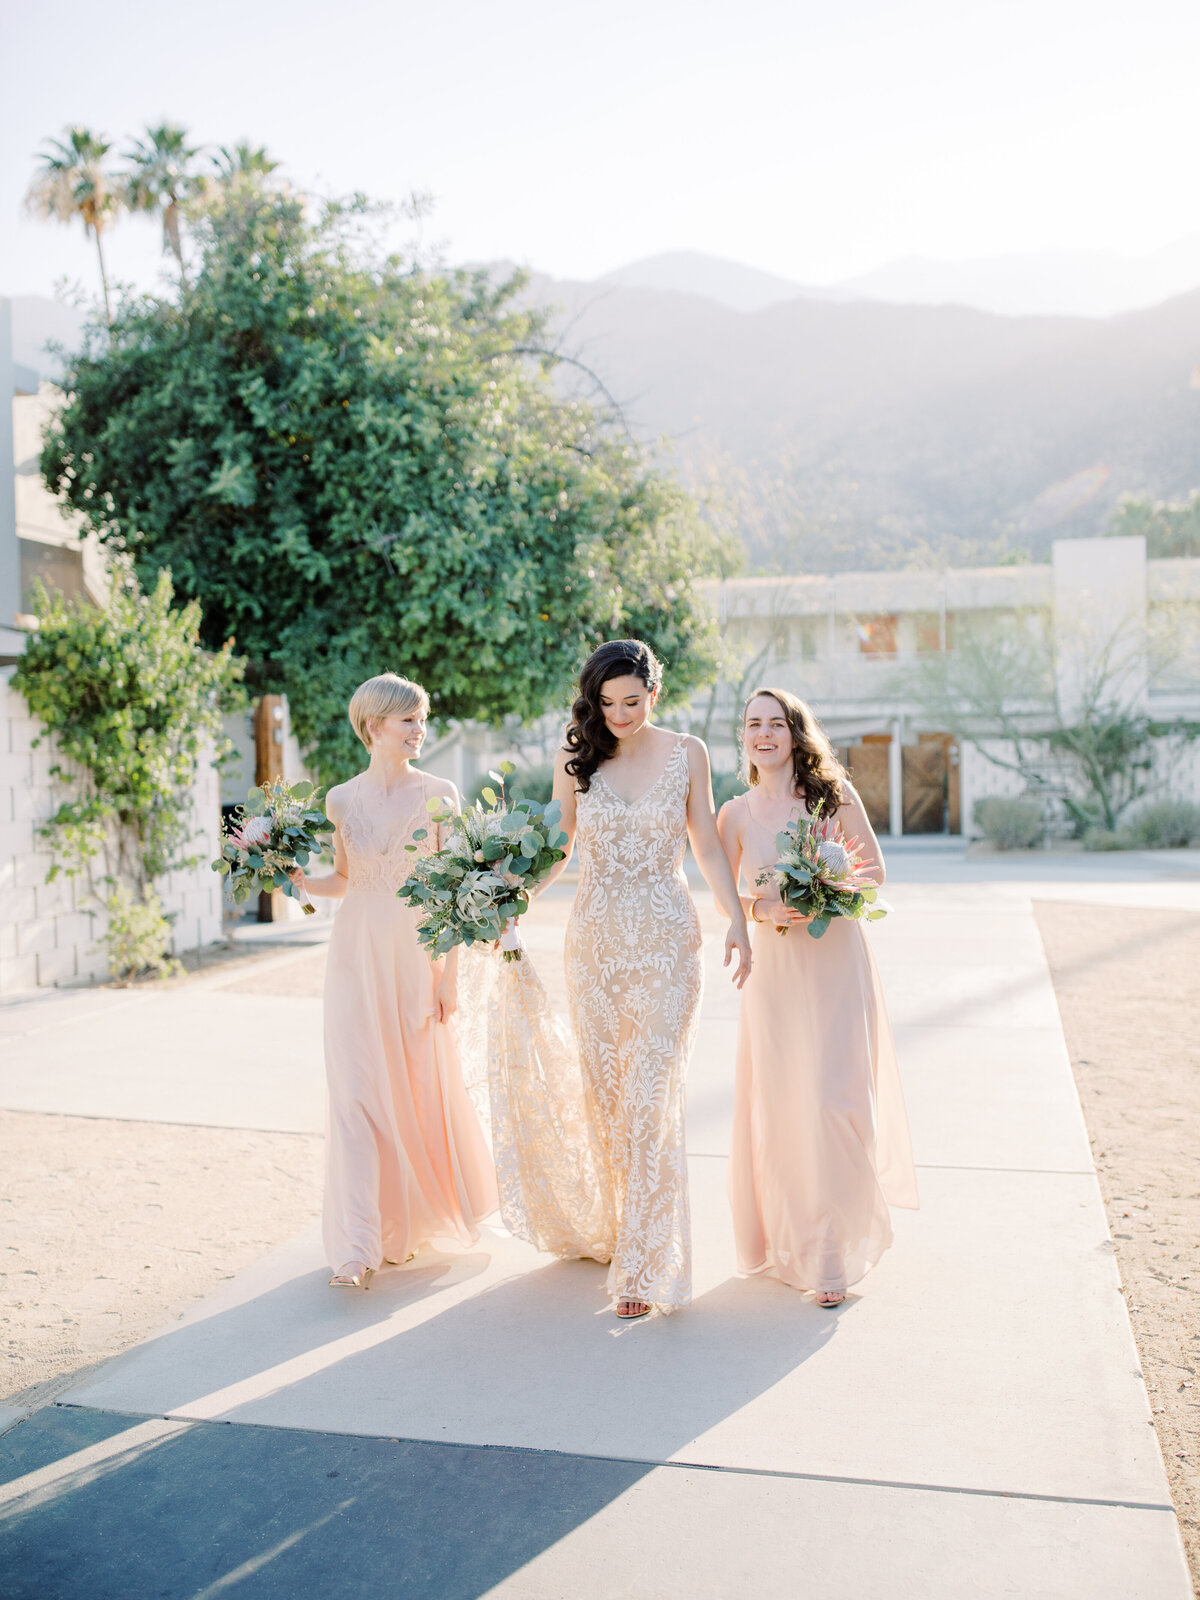 Charleston Wedding Photographer | Beaufort Wedding Photographer | Savannah Wedding Photographer | Santa Barbara Wedding Photographer | San Luis Obispo Wedding Photographer-29